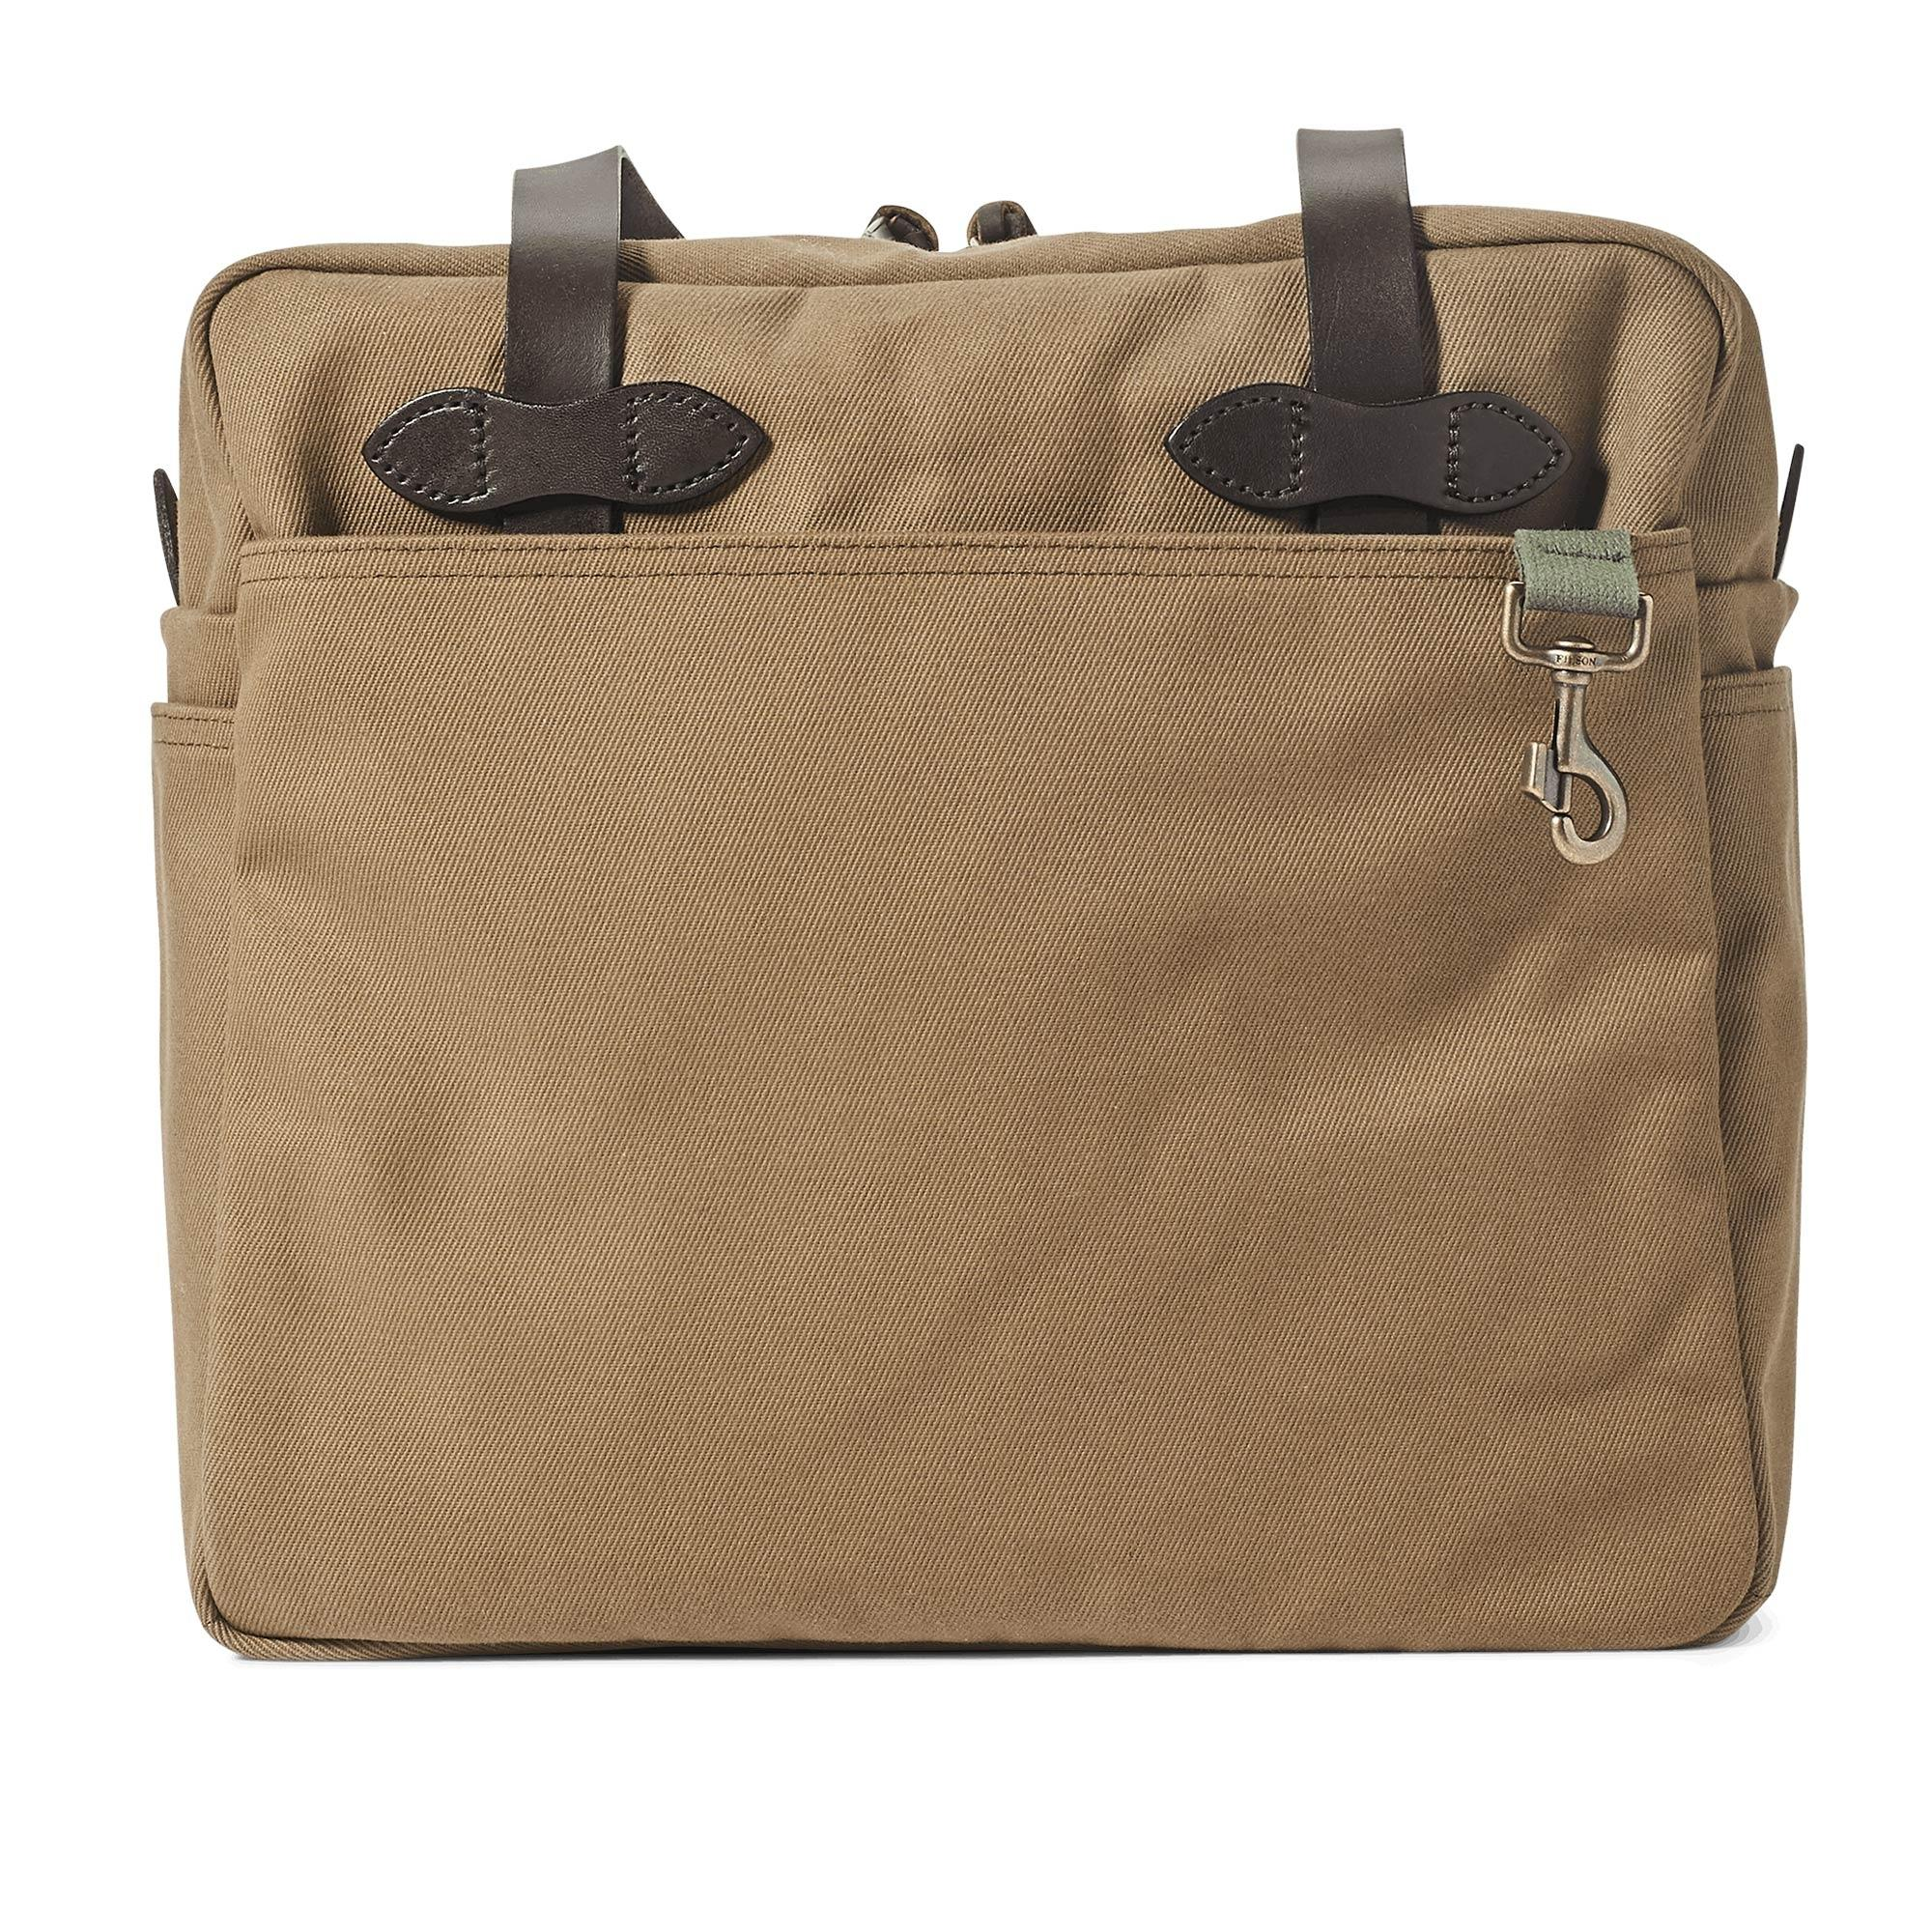 51e52385e06 Lyst - Filson Rugged Twill Tote Bag With Zipper - Save 8%